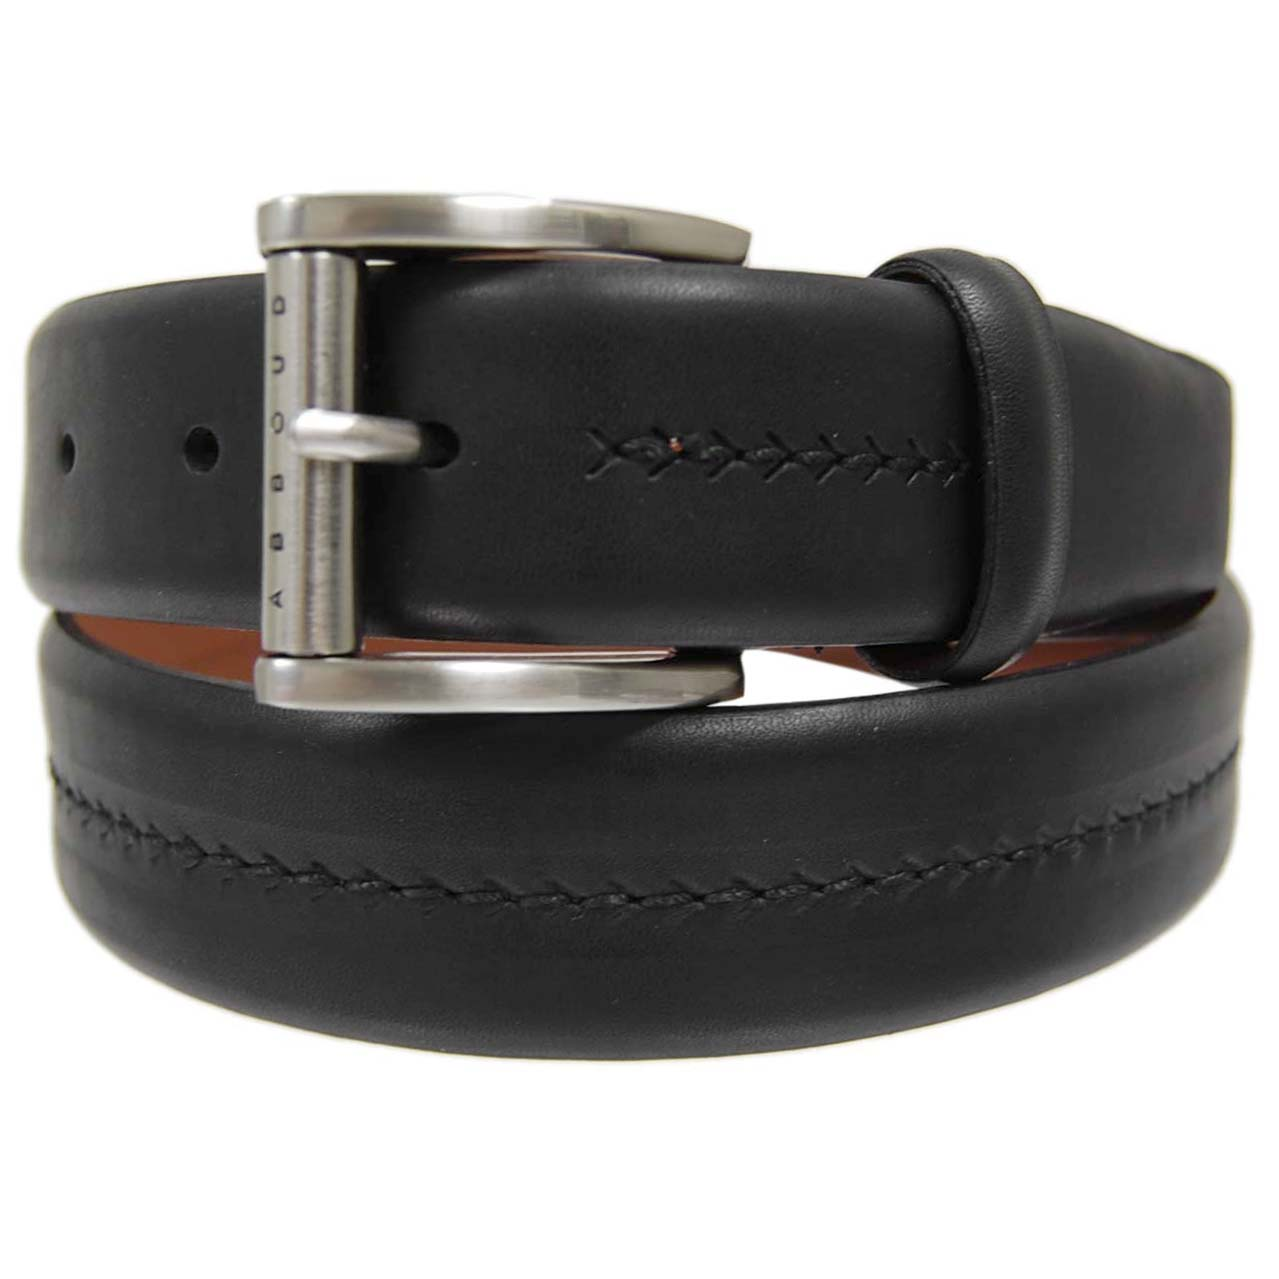 Joseph Abboud Men's Herringbone Leather Belt - Thumbnail 1